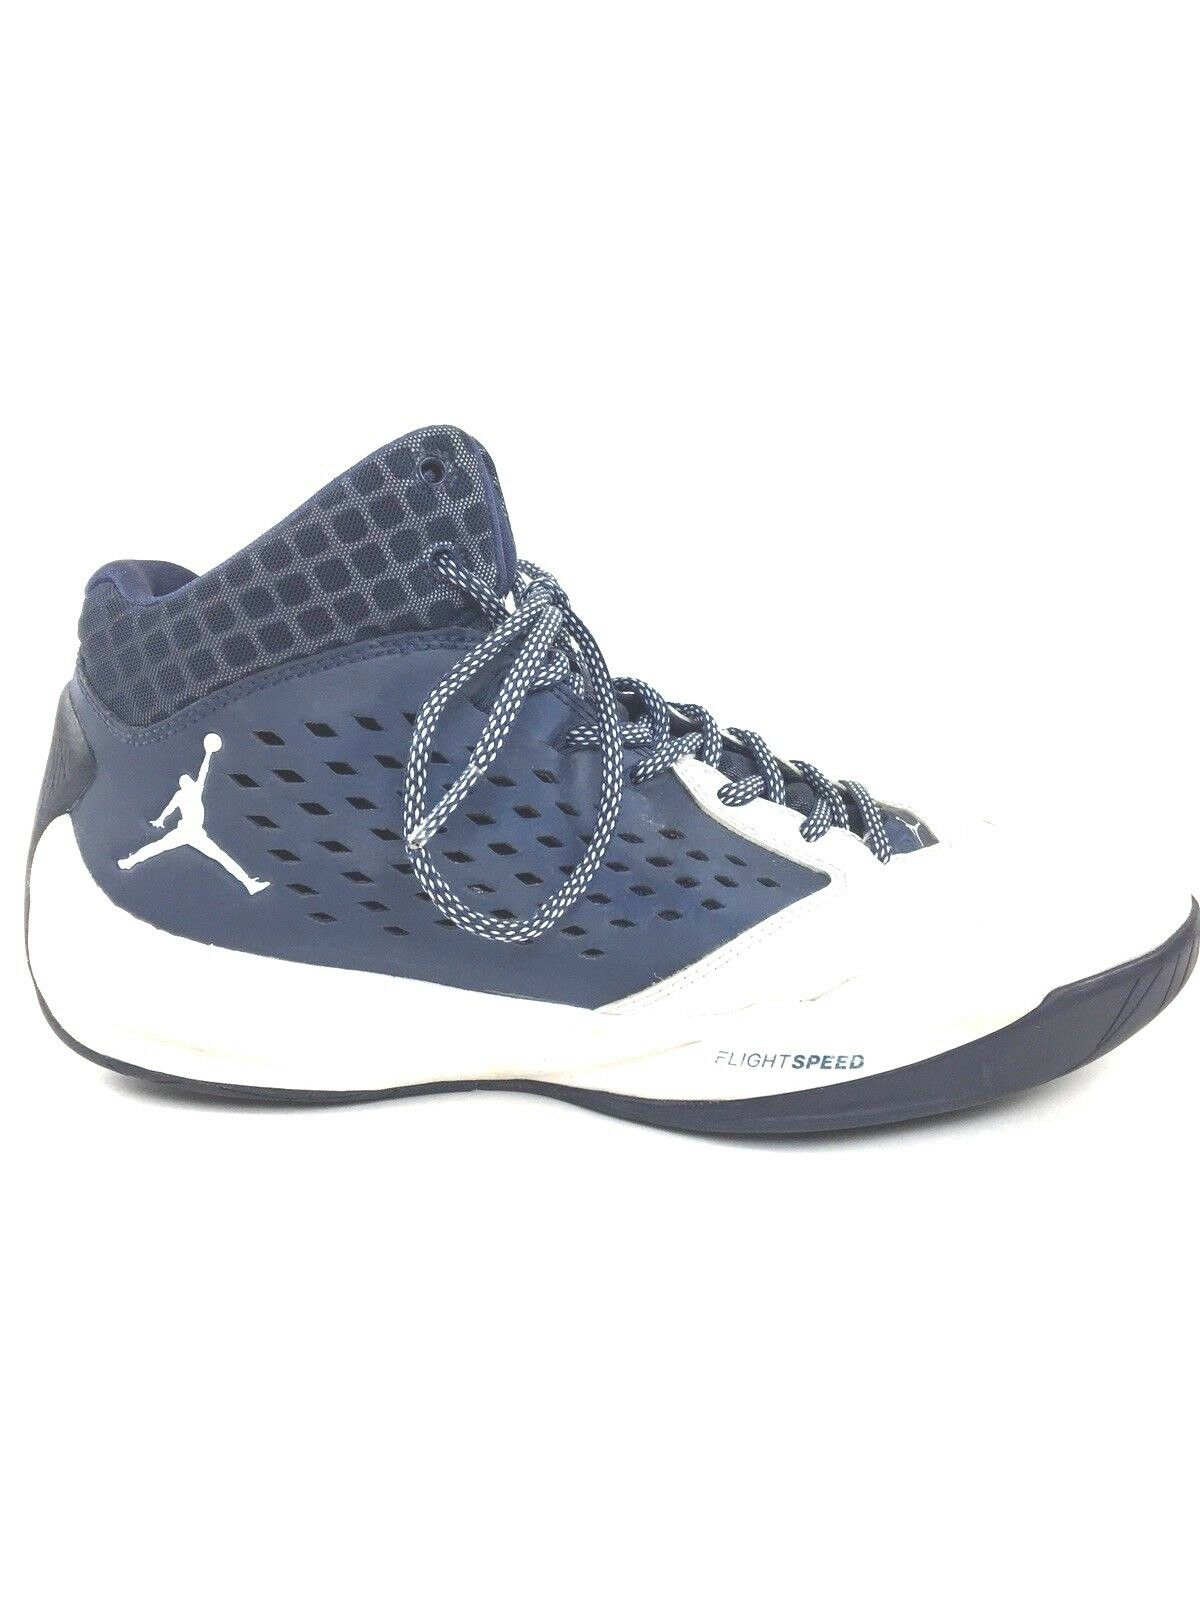 Basketball Shoes Jordan shoes Flight Speed Basketball Sneakers High Tops 8.5 Casual wild